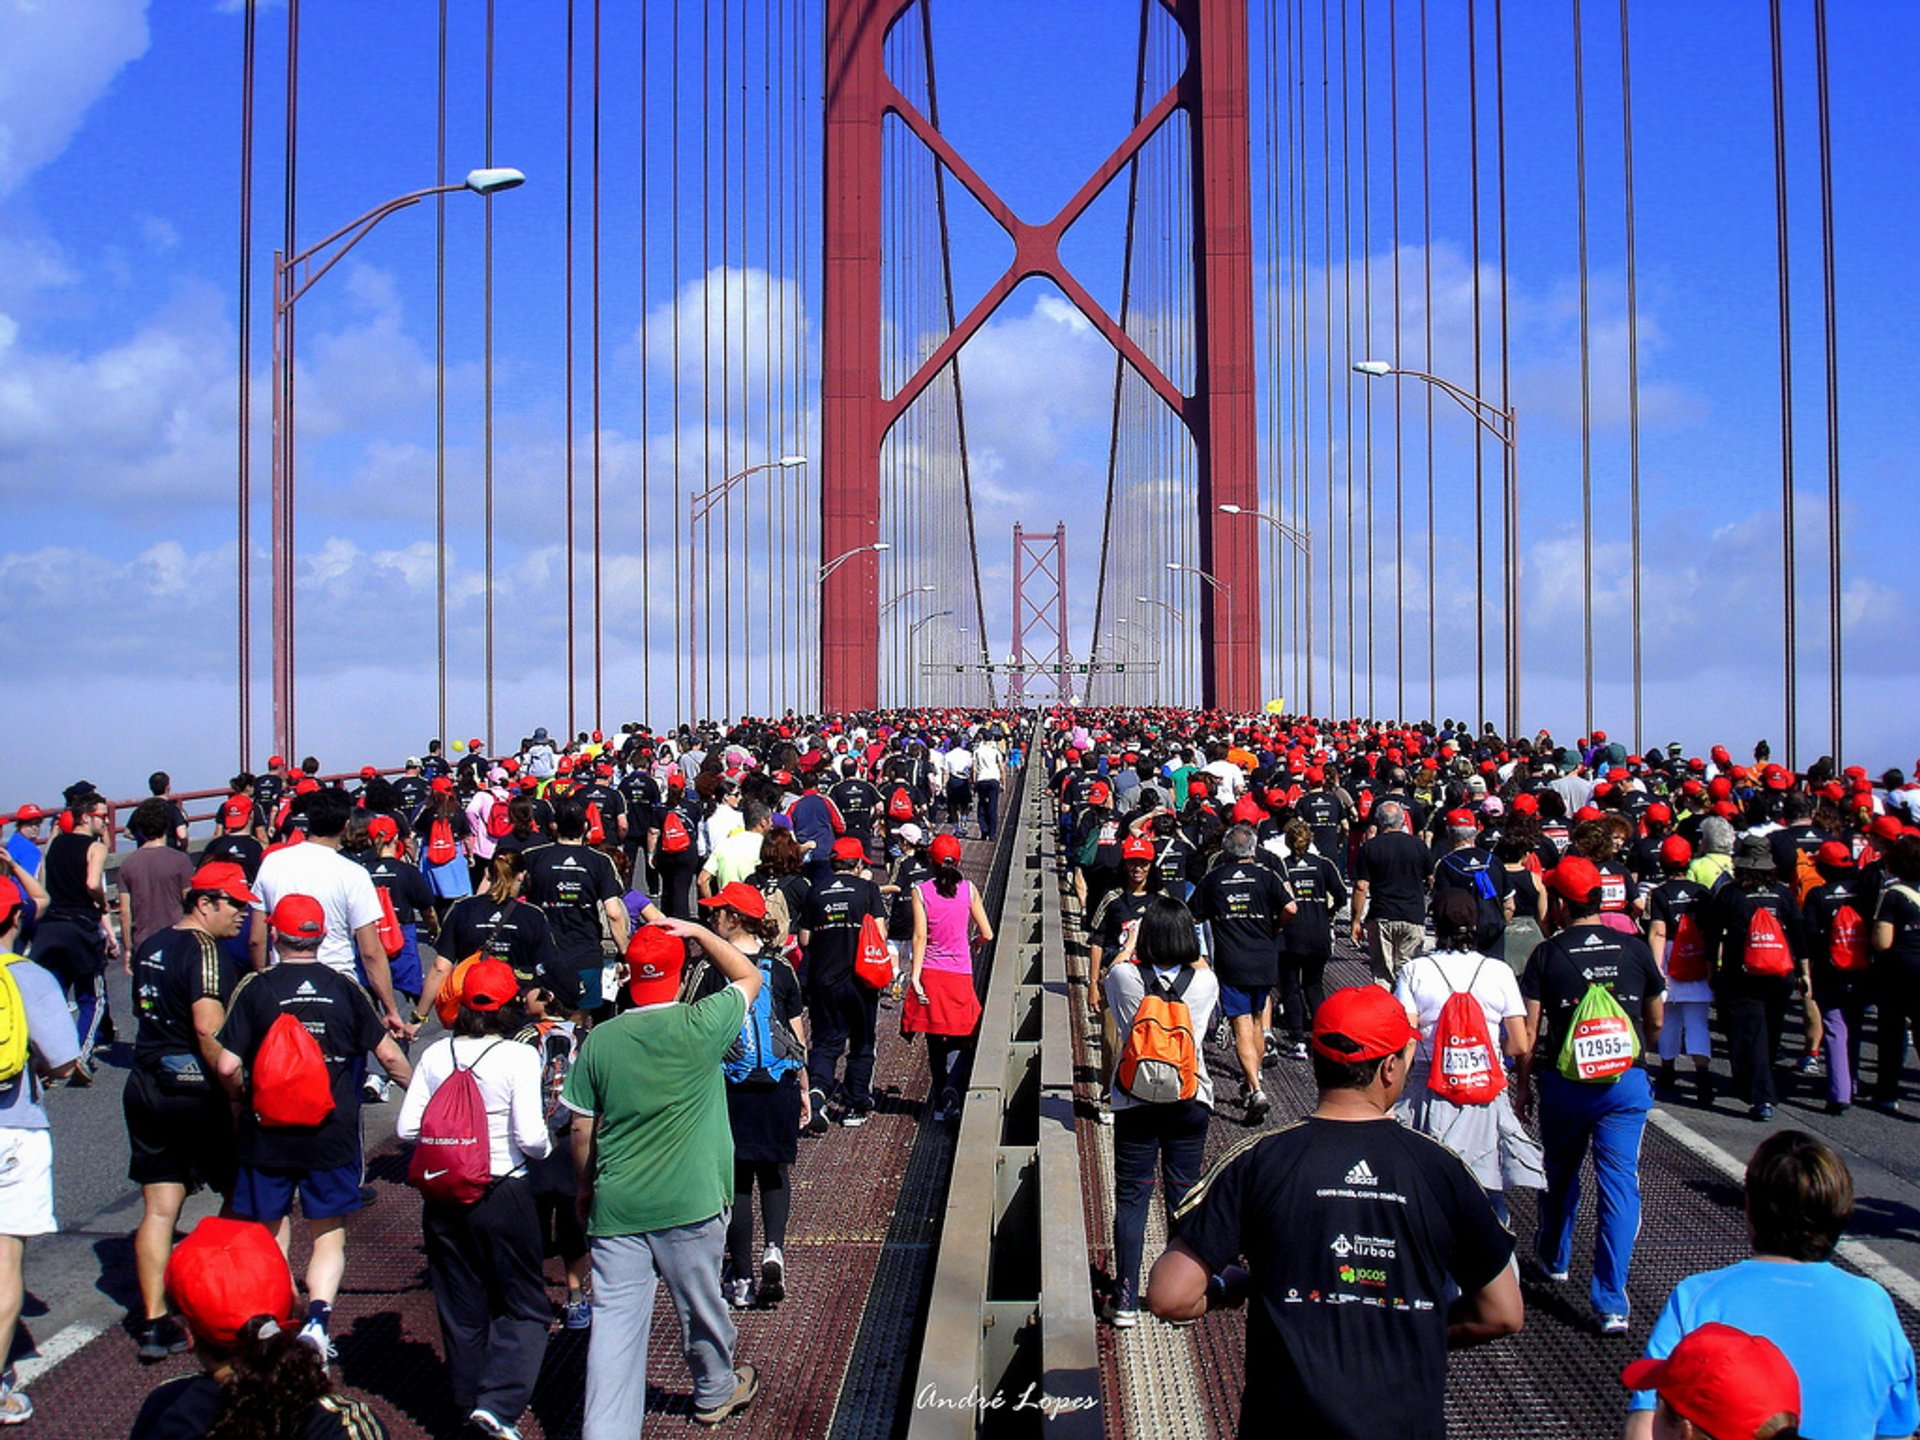 Meia Maratona de Lisboa or Lisbon Half Marathon in Portugal 2020 - Best Time